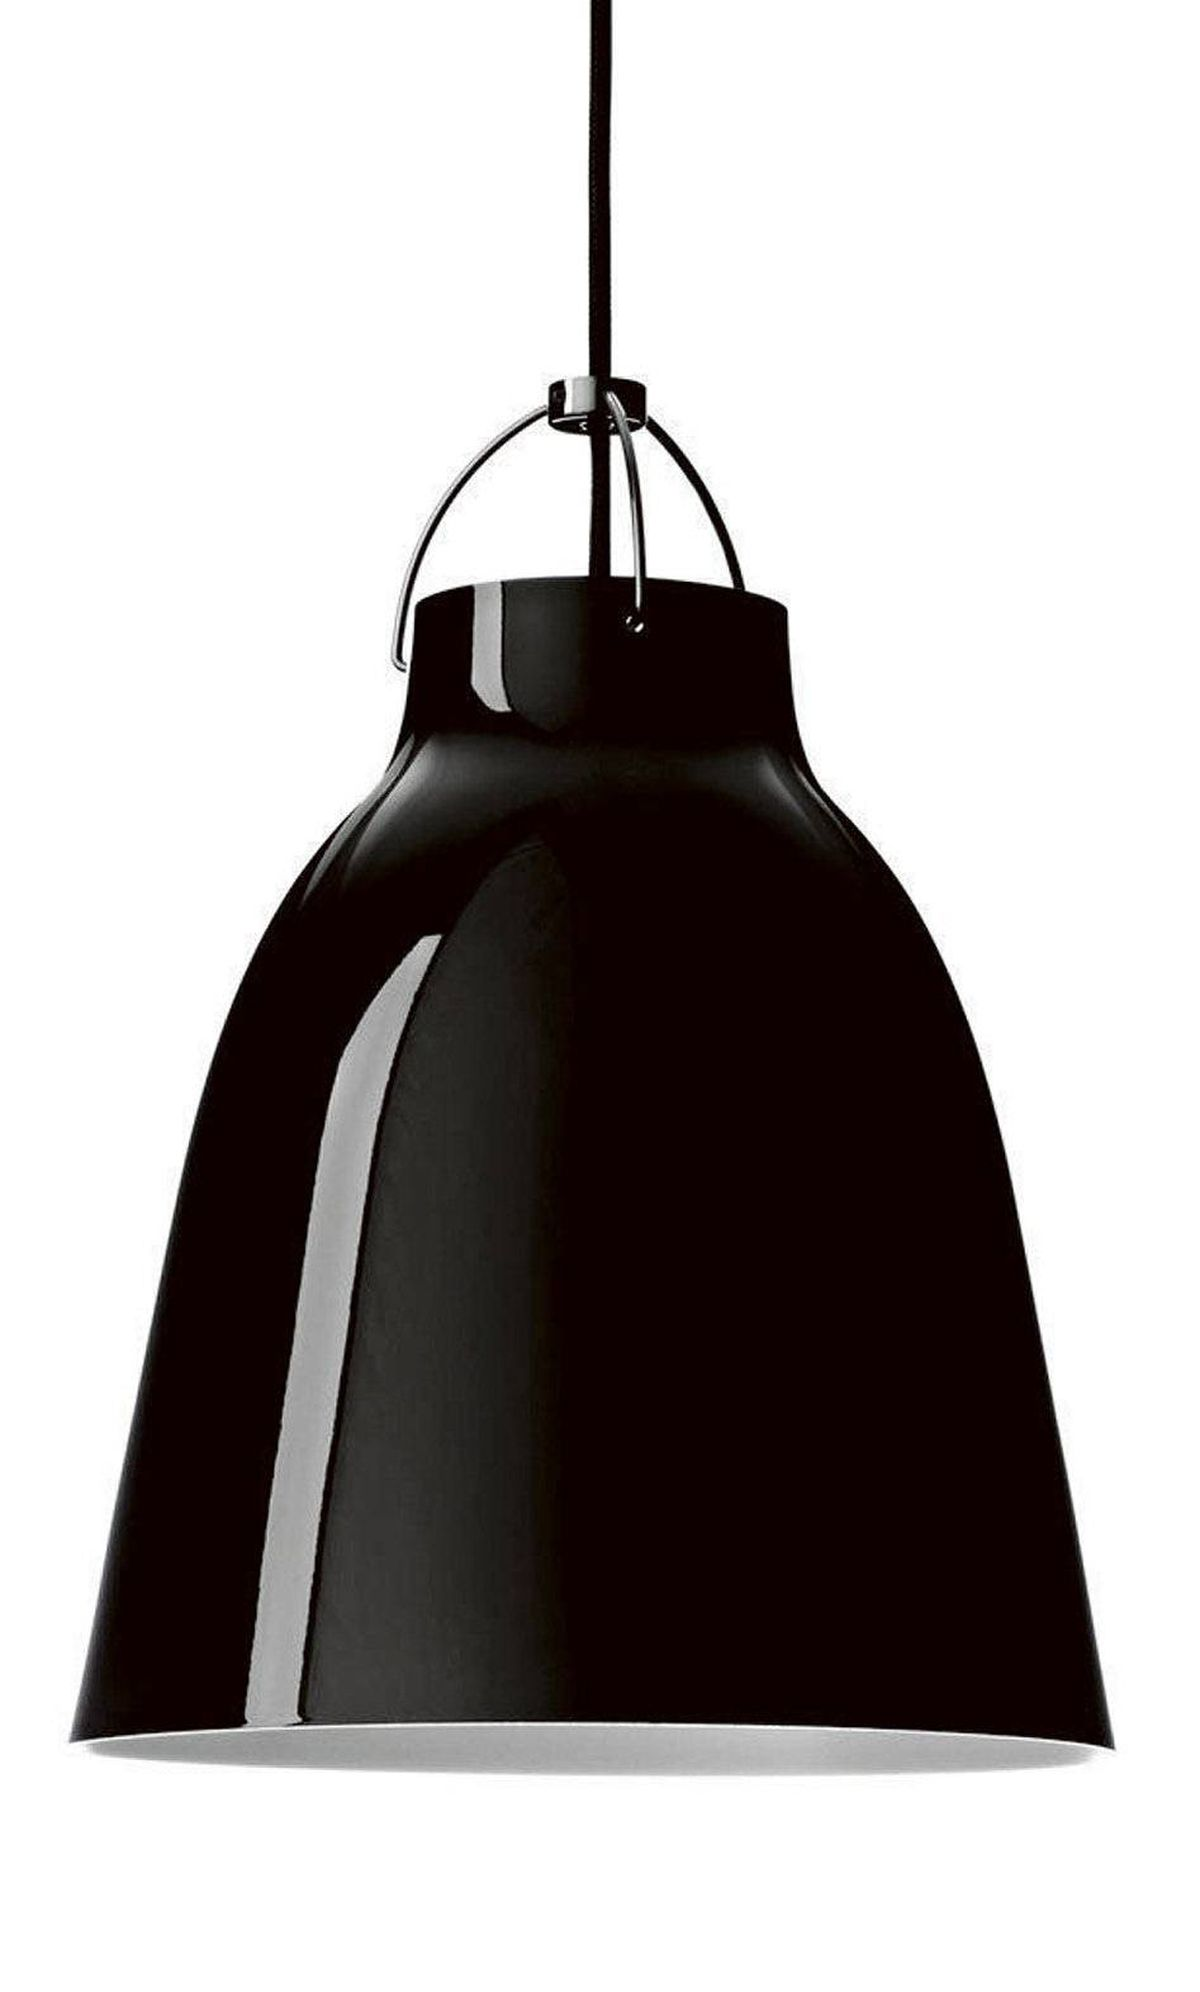 Danish designer Cecilie Manz's high-gloss Caravaggio lamp is made of drawn steel and features an opening at the top that casts light upward, illuminating the cord. $320 to $945 through www.mjolk.ca.